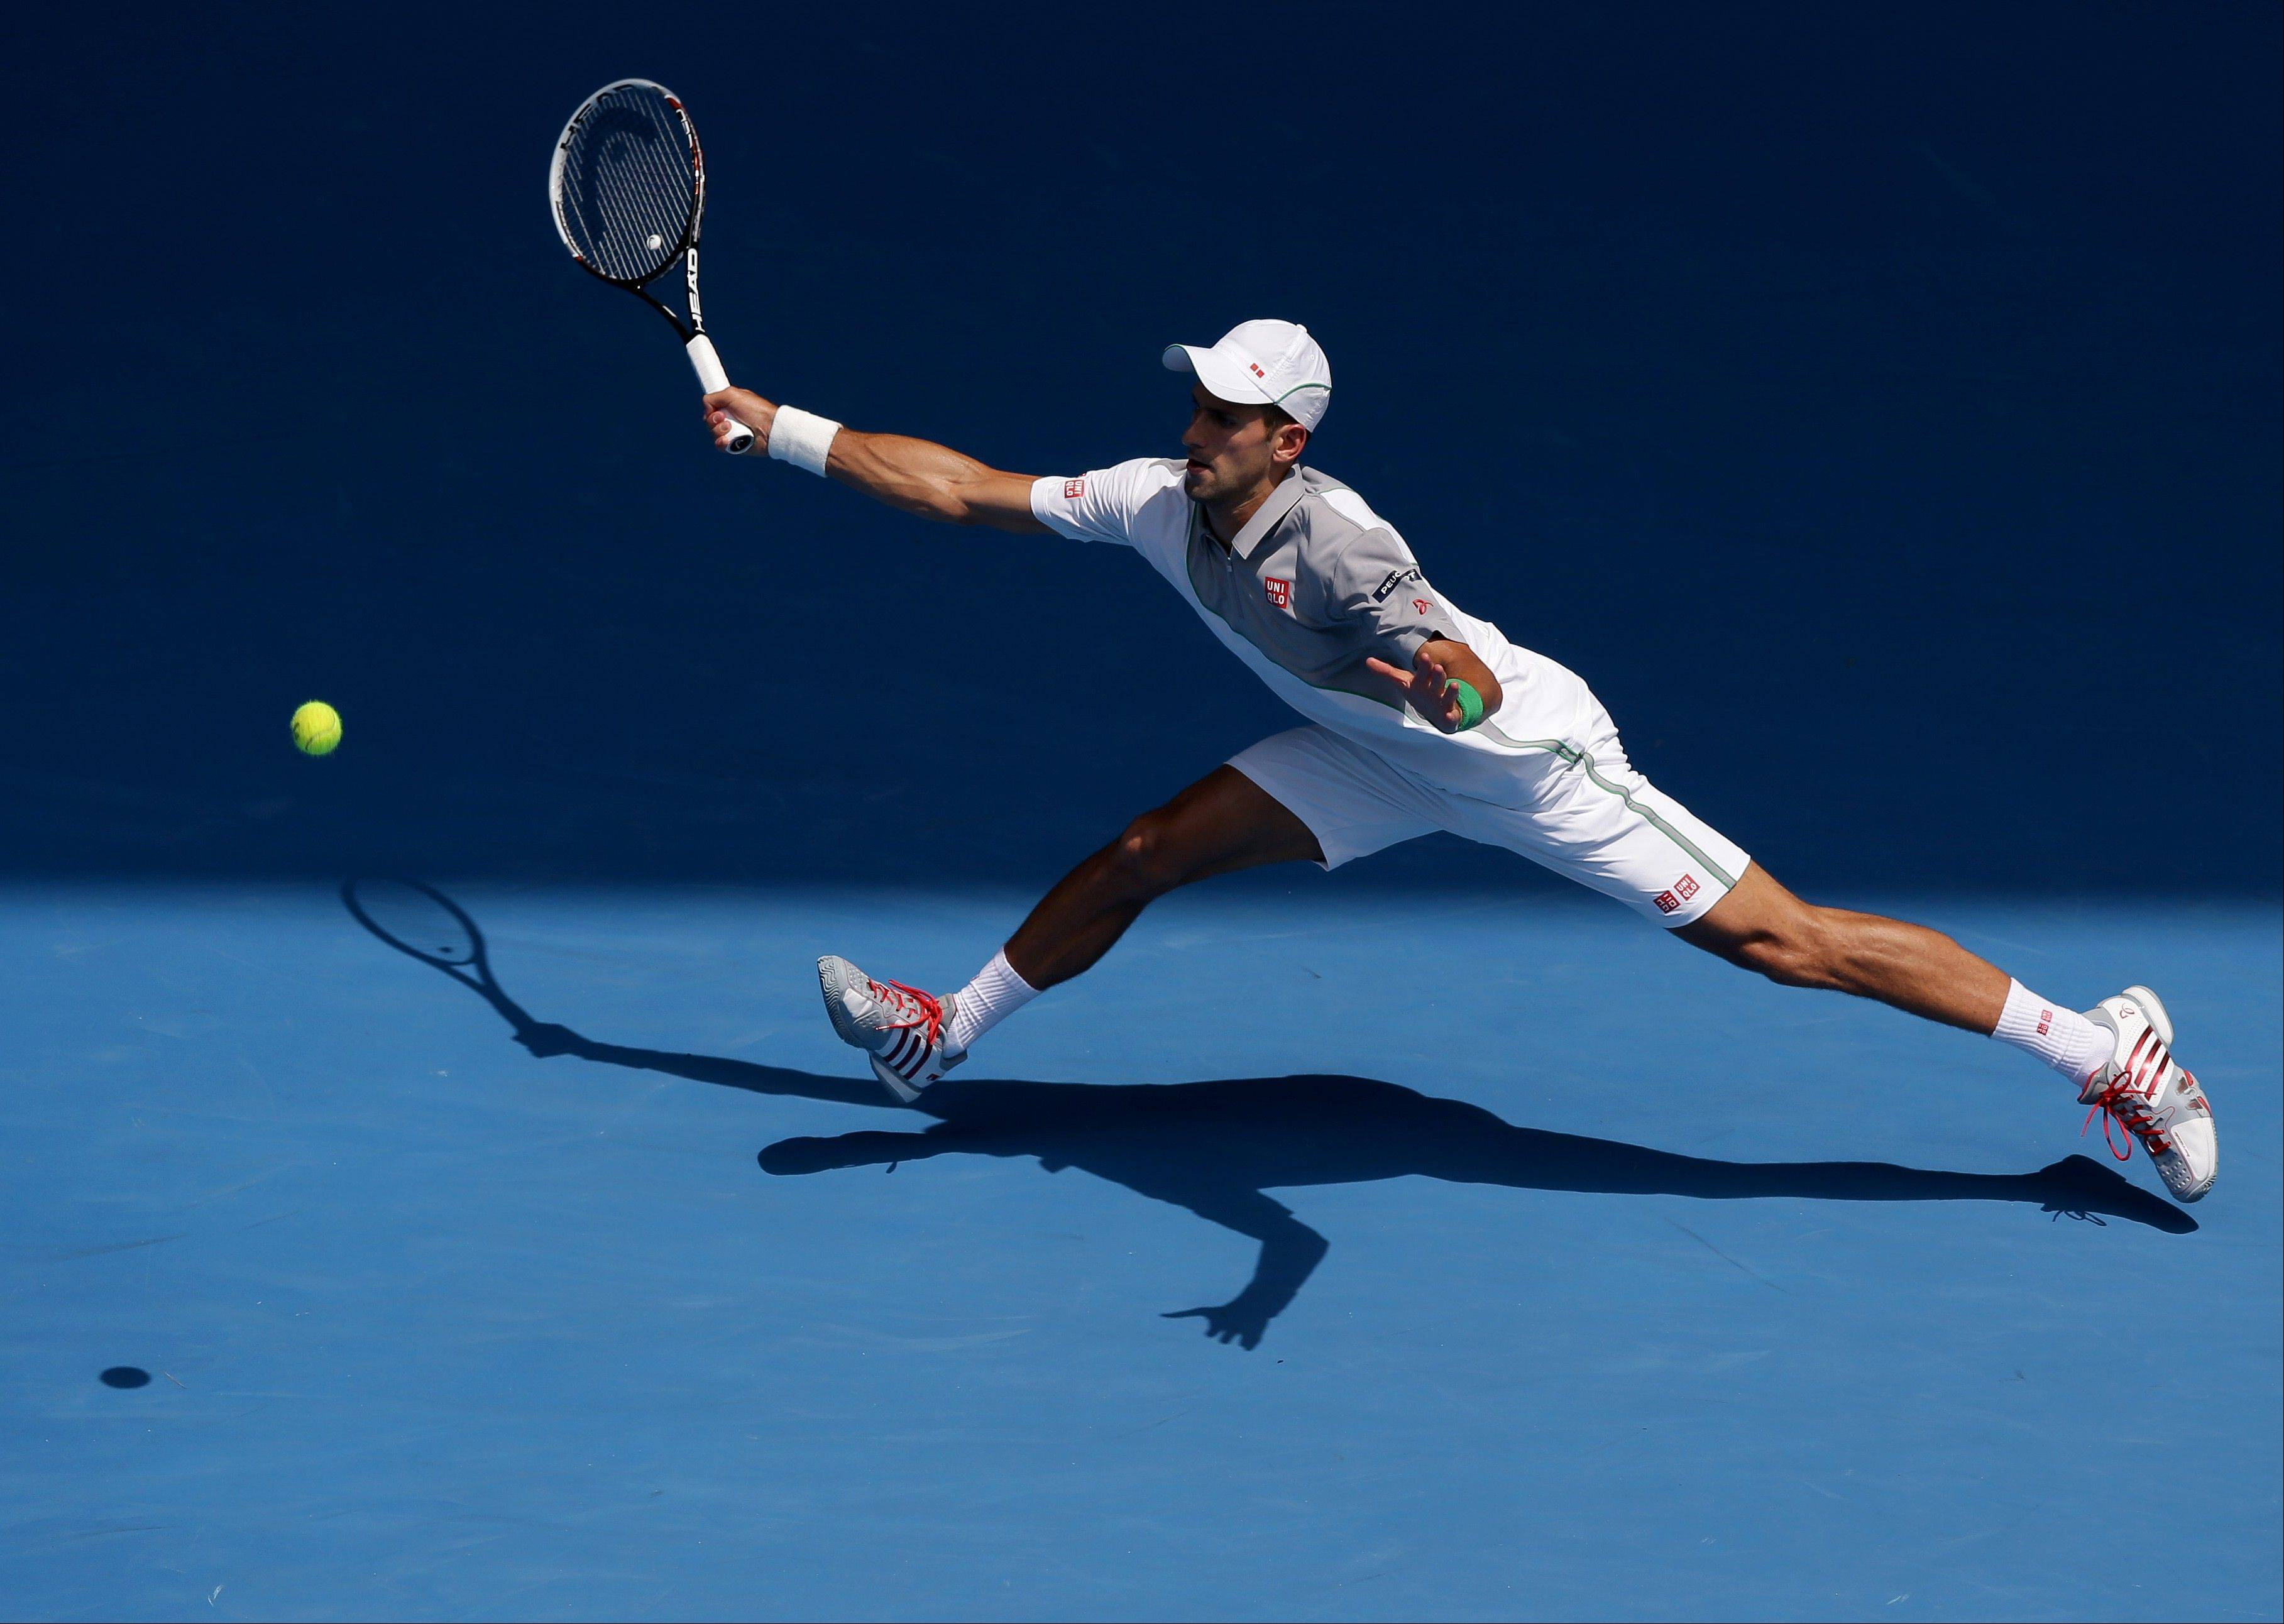 Novak Djokovic of Serbia makes a forehand return to Leonardo Mayer of Argentina during their second round match at the Australian Open tennis championship in Melbourne, Australia, Wednesday, Jan. 15, 2014.